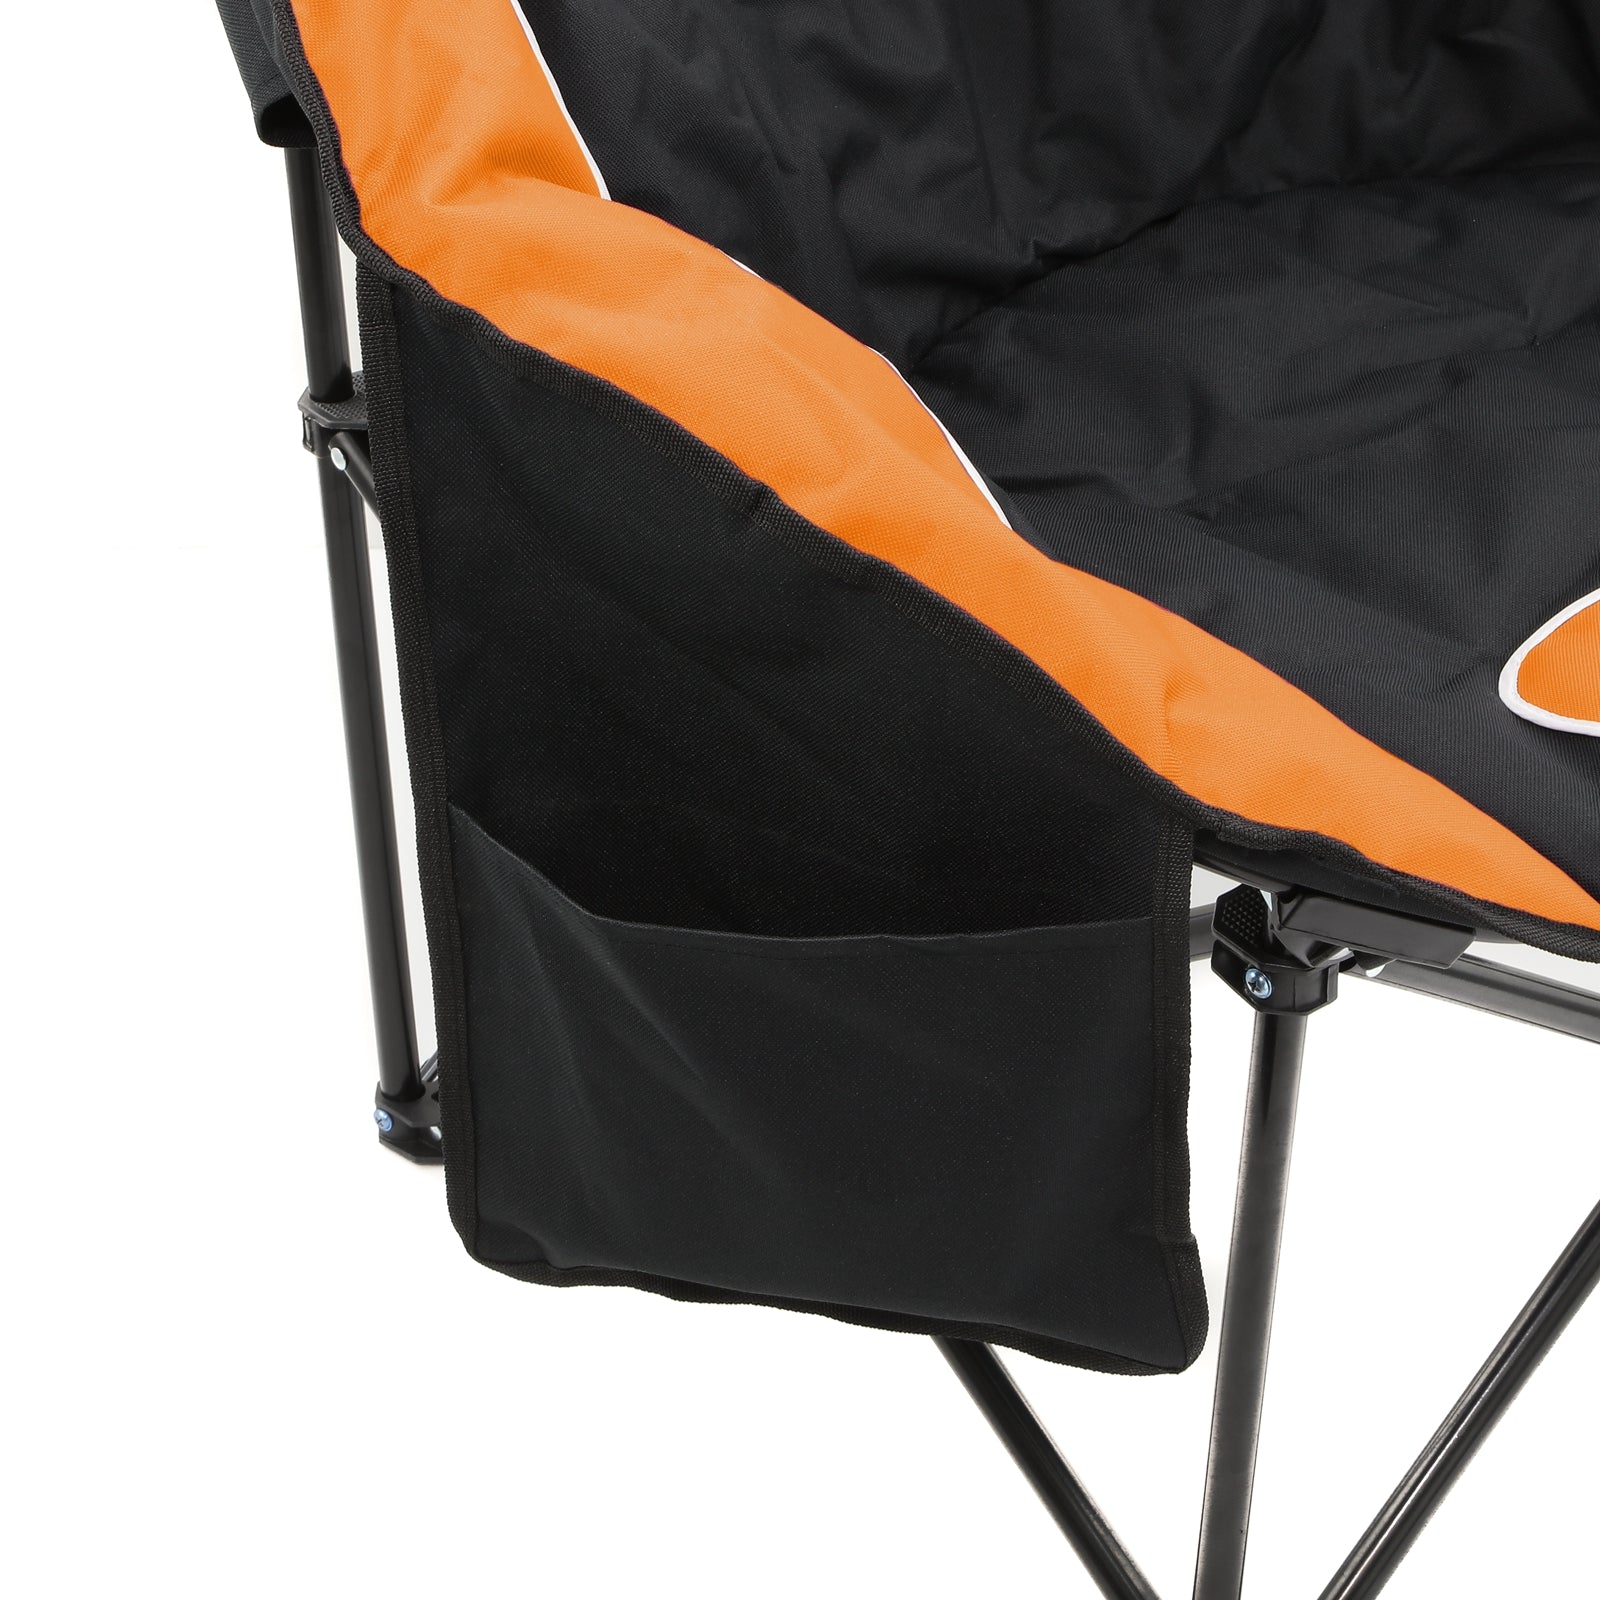 2pc Folding Padded Round Camping Beach Chair with Storage & Carry Bag